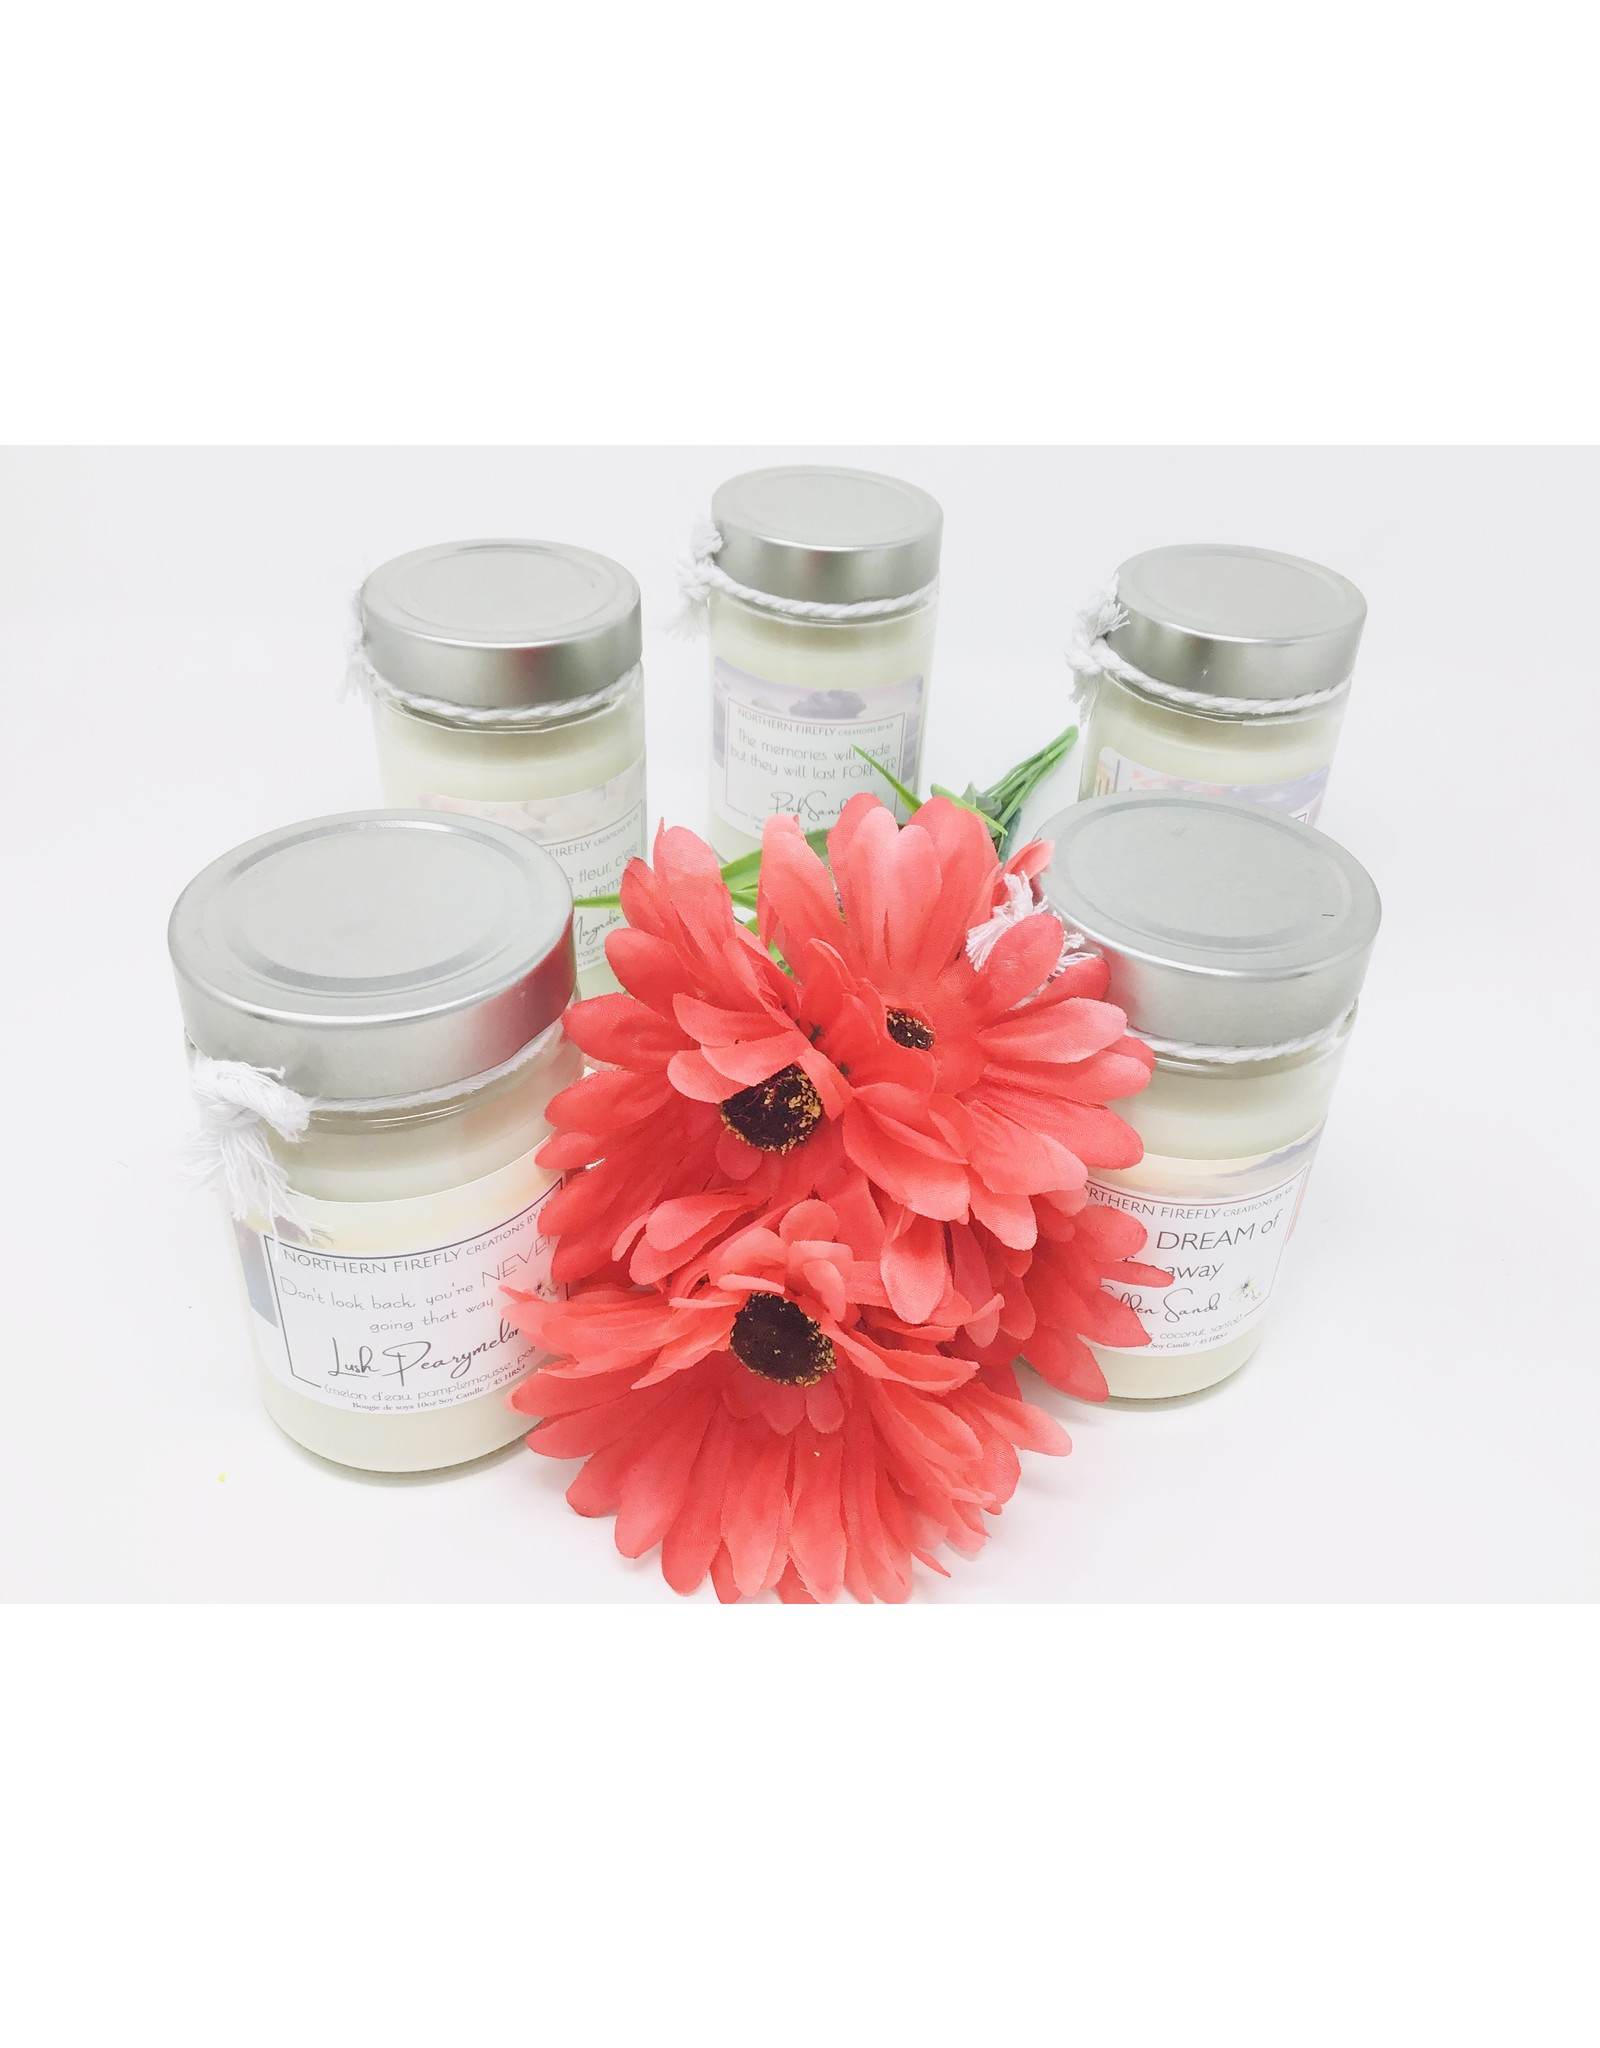 Firefly Creations Candle, Collection Ete